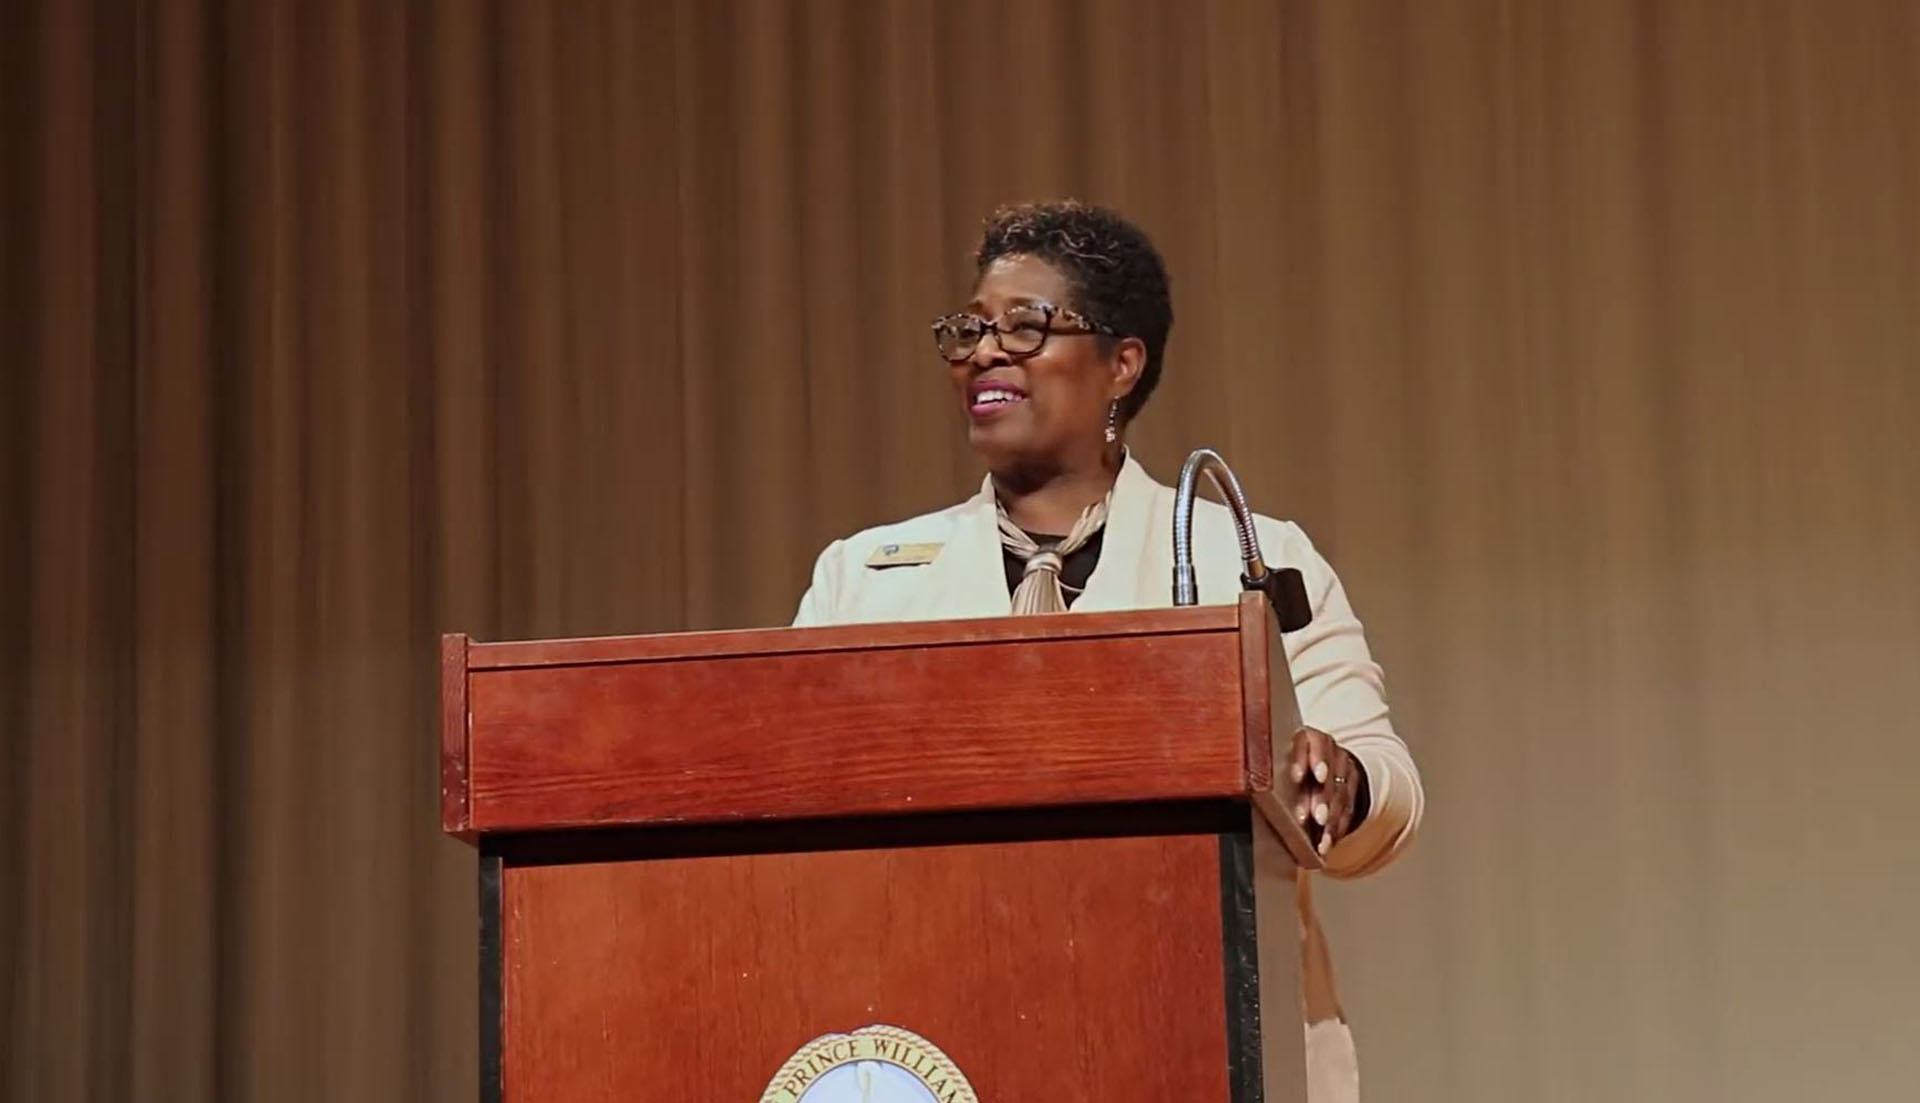 Potomac District Supervisor hosts In-Person Town Hall